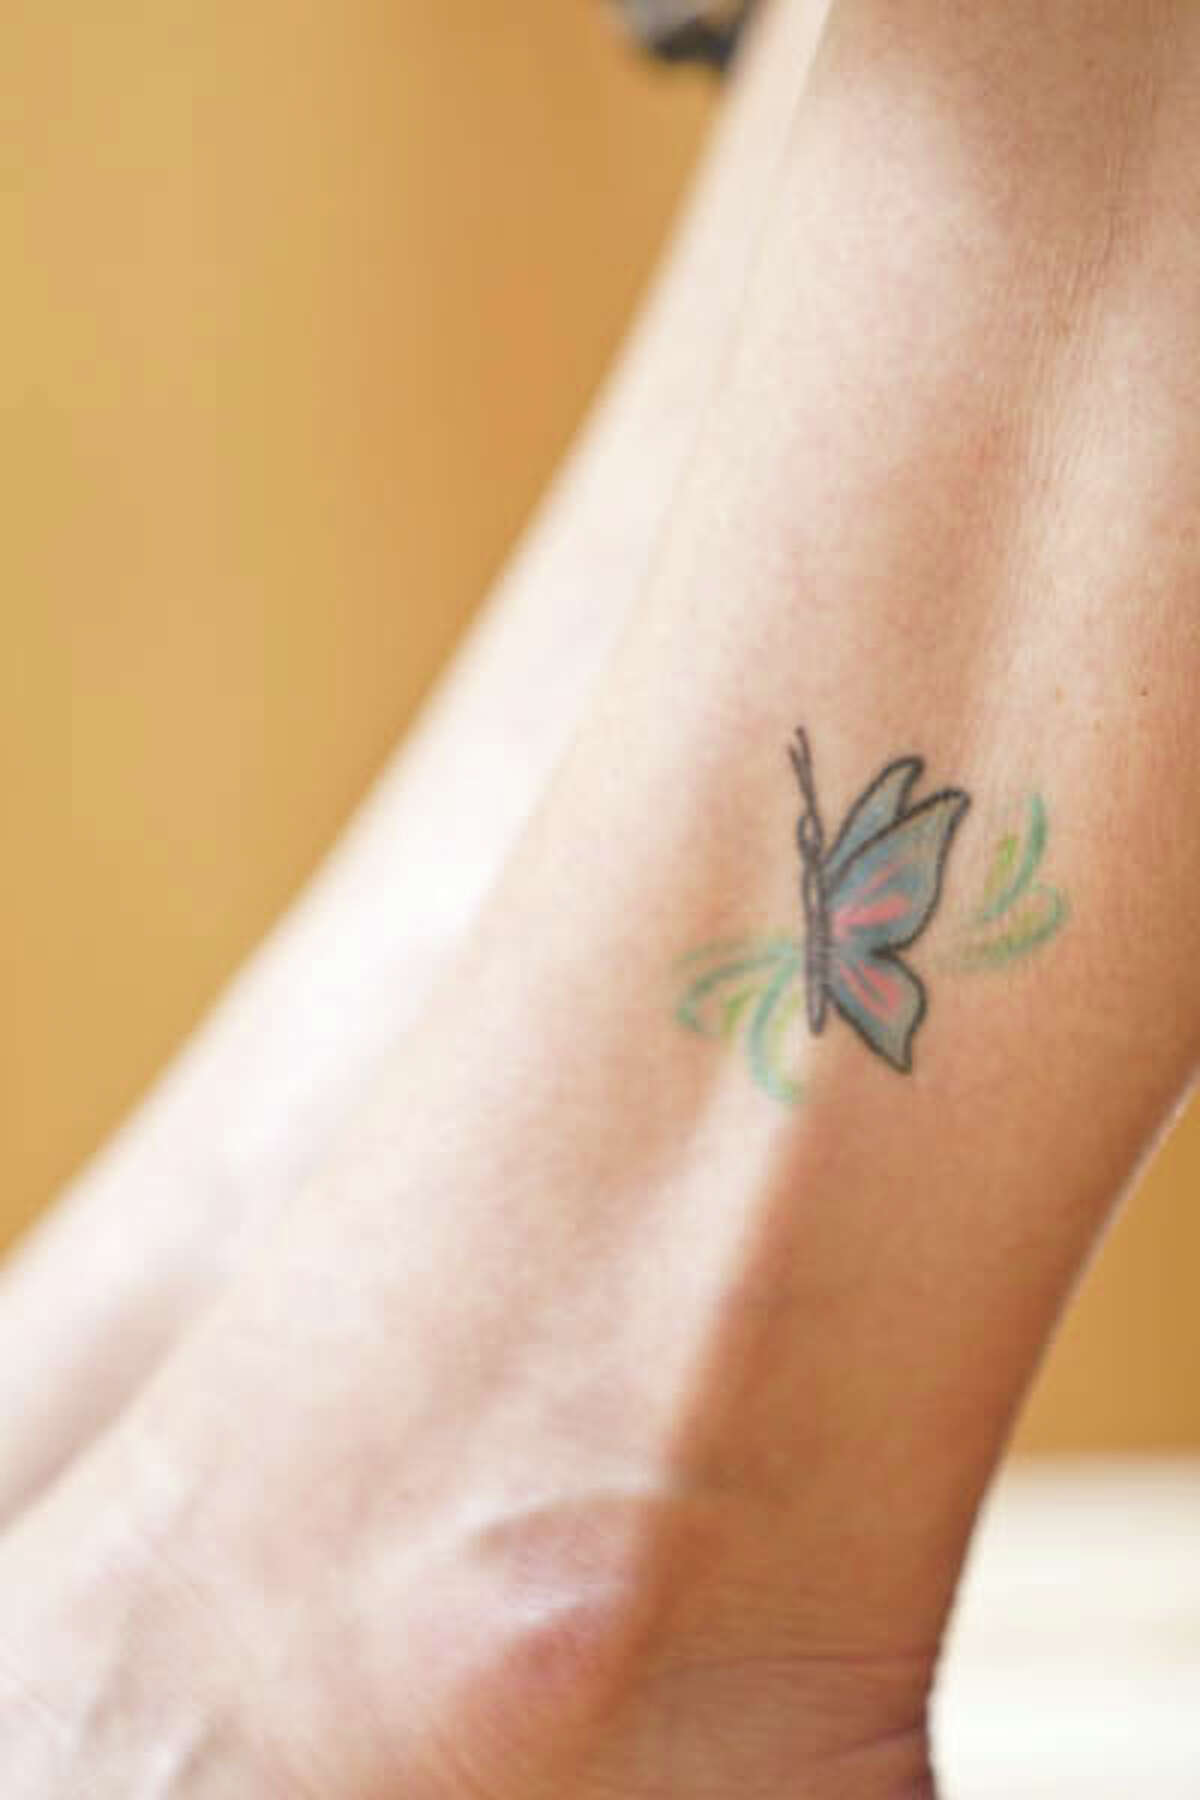 """HealthyLife cover model Pam Lejeunesse, 53, of Clifton Park, got a butterfly tattoo on her ankle as a way to bond with her daughters, Heather and Ashley, during a vacation in Virginia a few years ago. """"It was spur-of-the-moment to an extent, although we planned it once we were down there, choosing the place to go and the designs we wanted,"""" she says. """"We had been talking about getting tattoos for a long time."""" (Photo by Suzanne Kawola/HealthyLife)"""